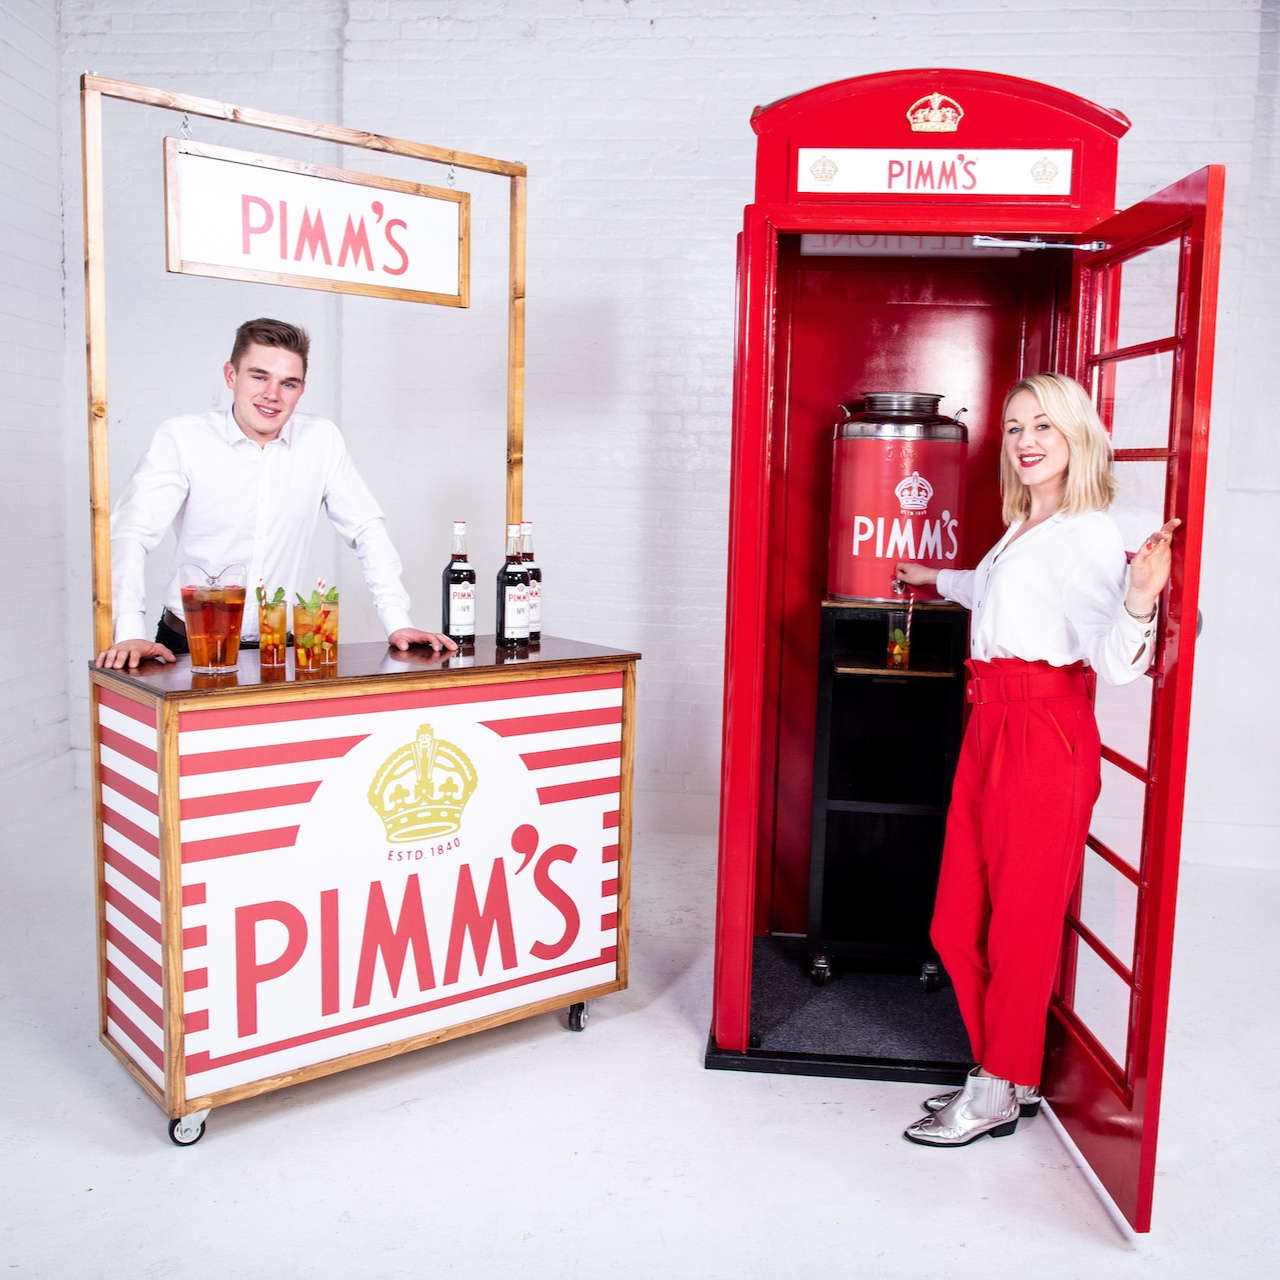 Quirky Group Pimm's Phone Box and Brand Ambassadors